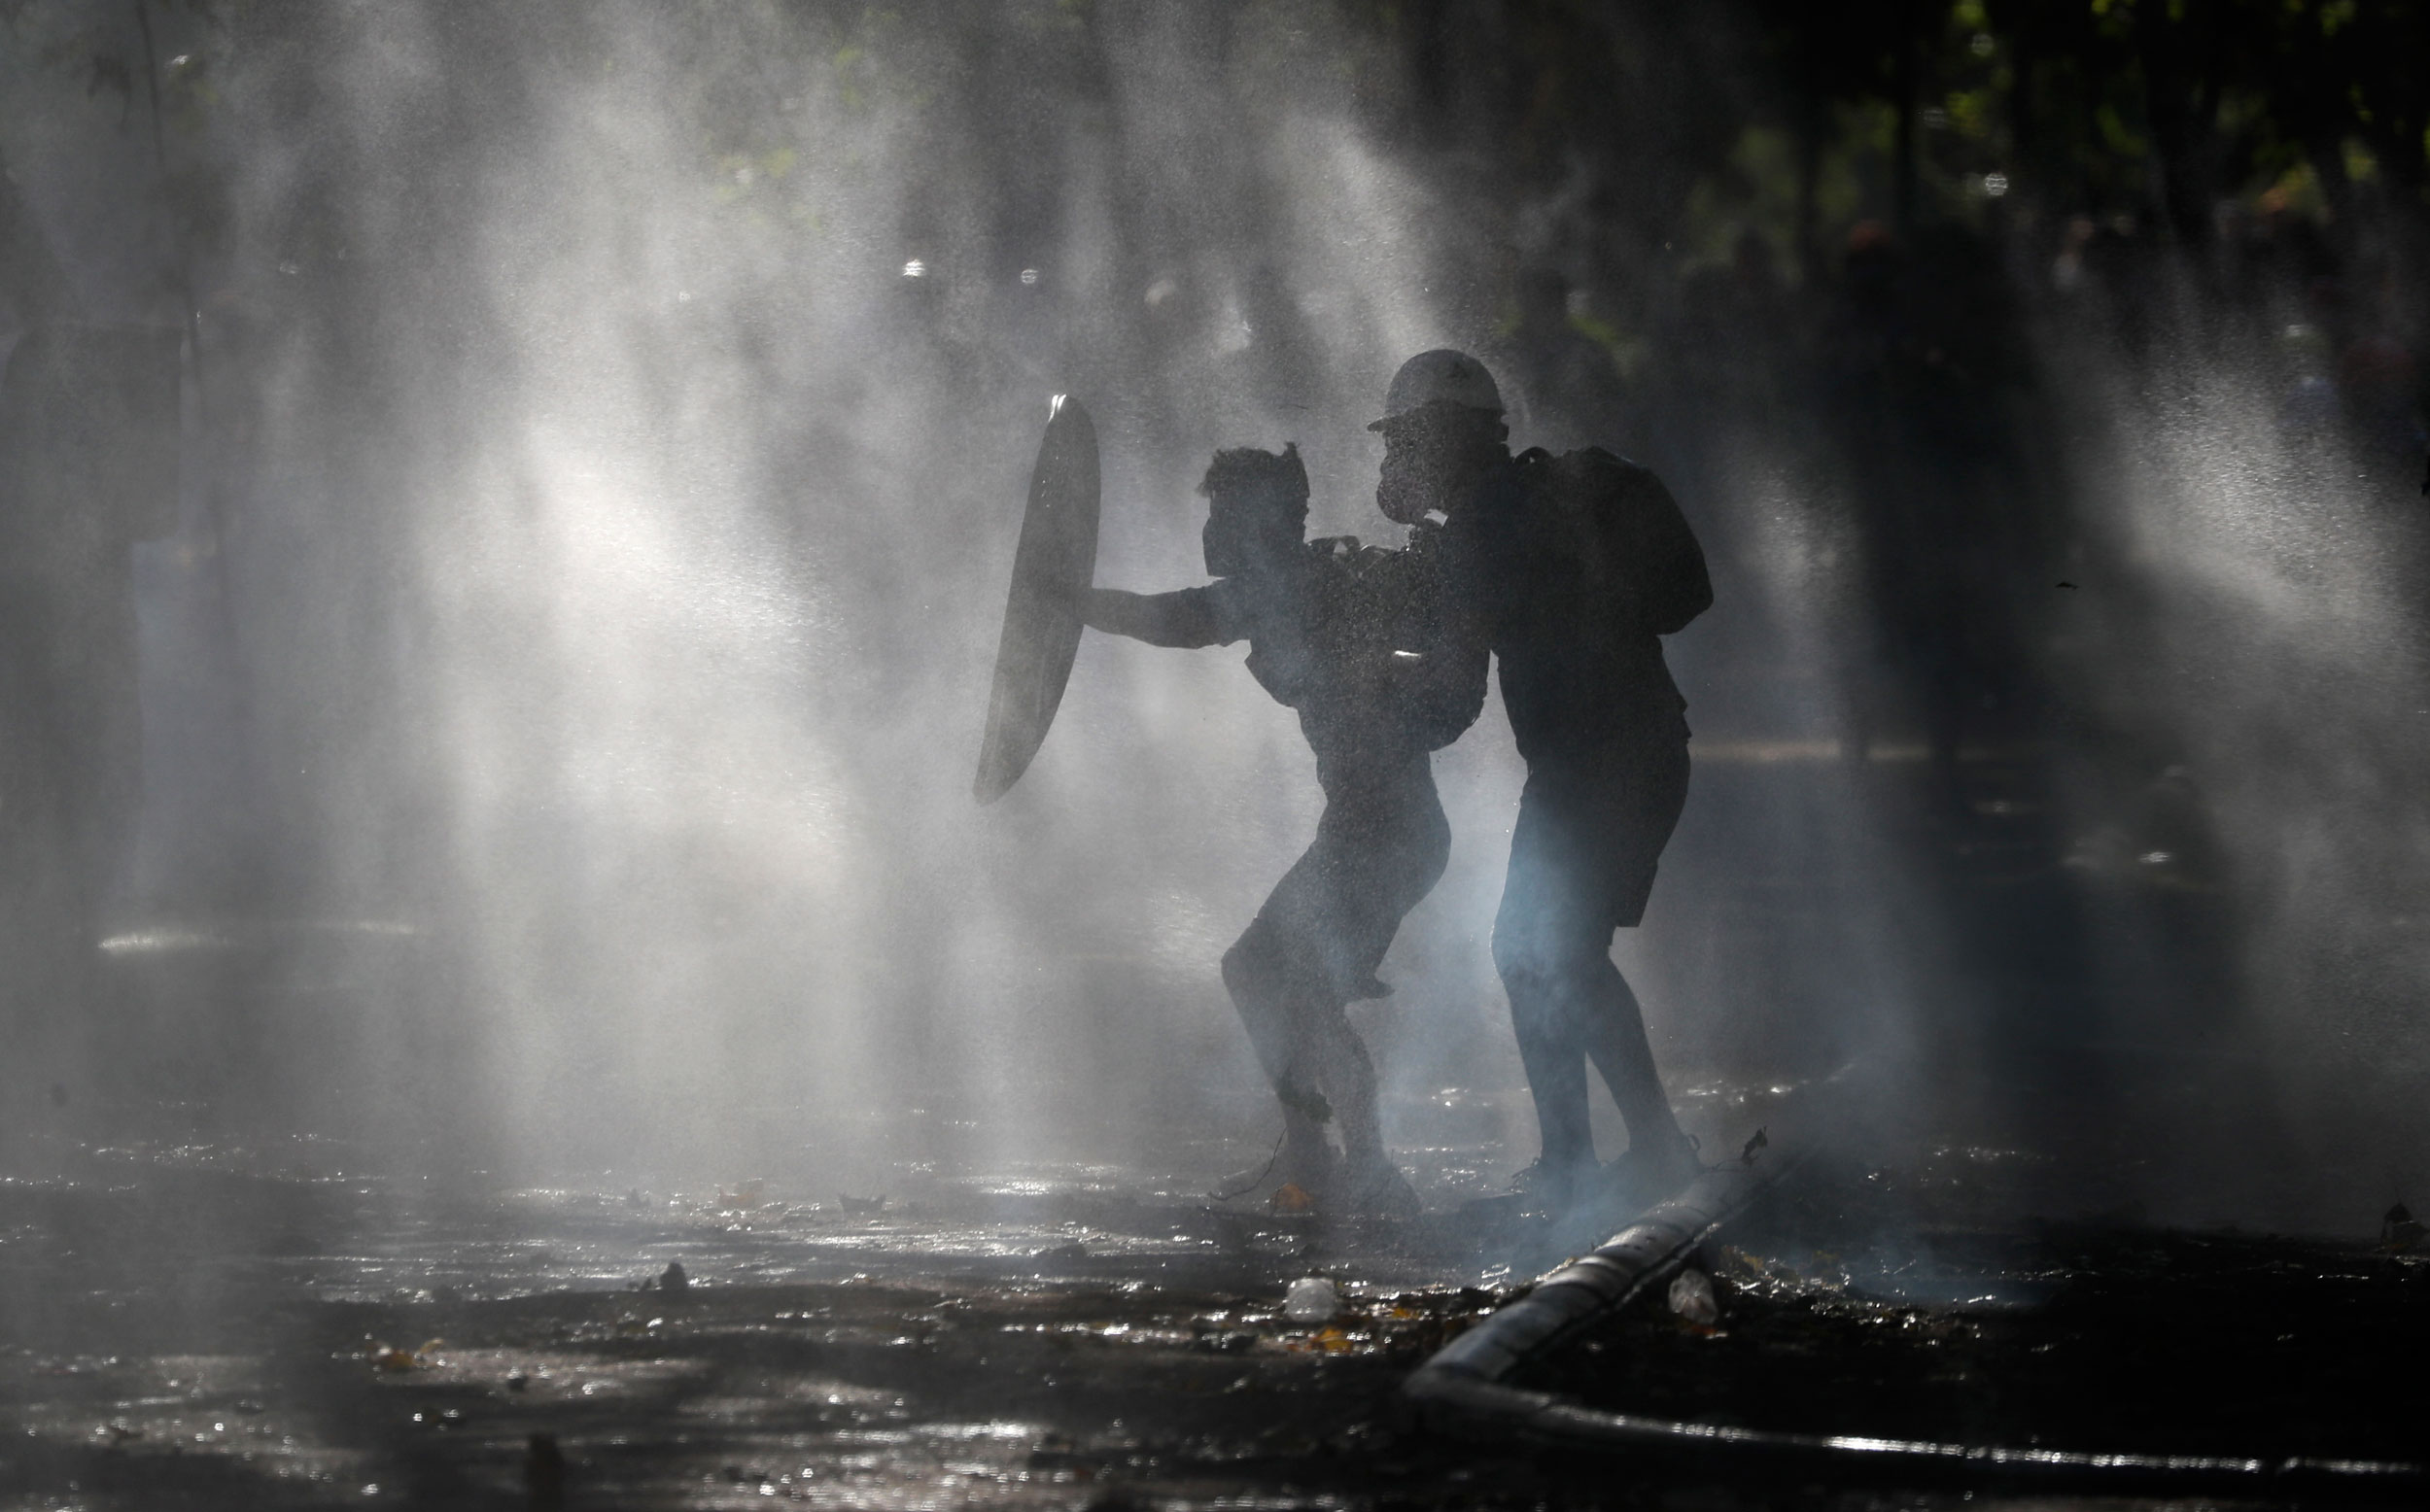 Anti-government demonstrators shield themselves from water cannons in Santiago, Chile, on Friday.